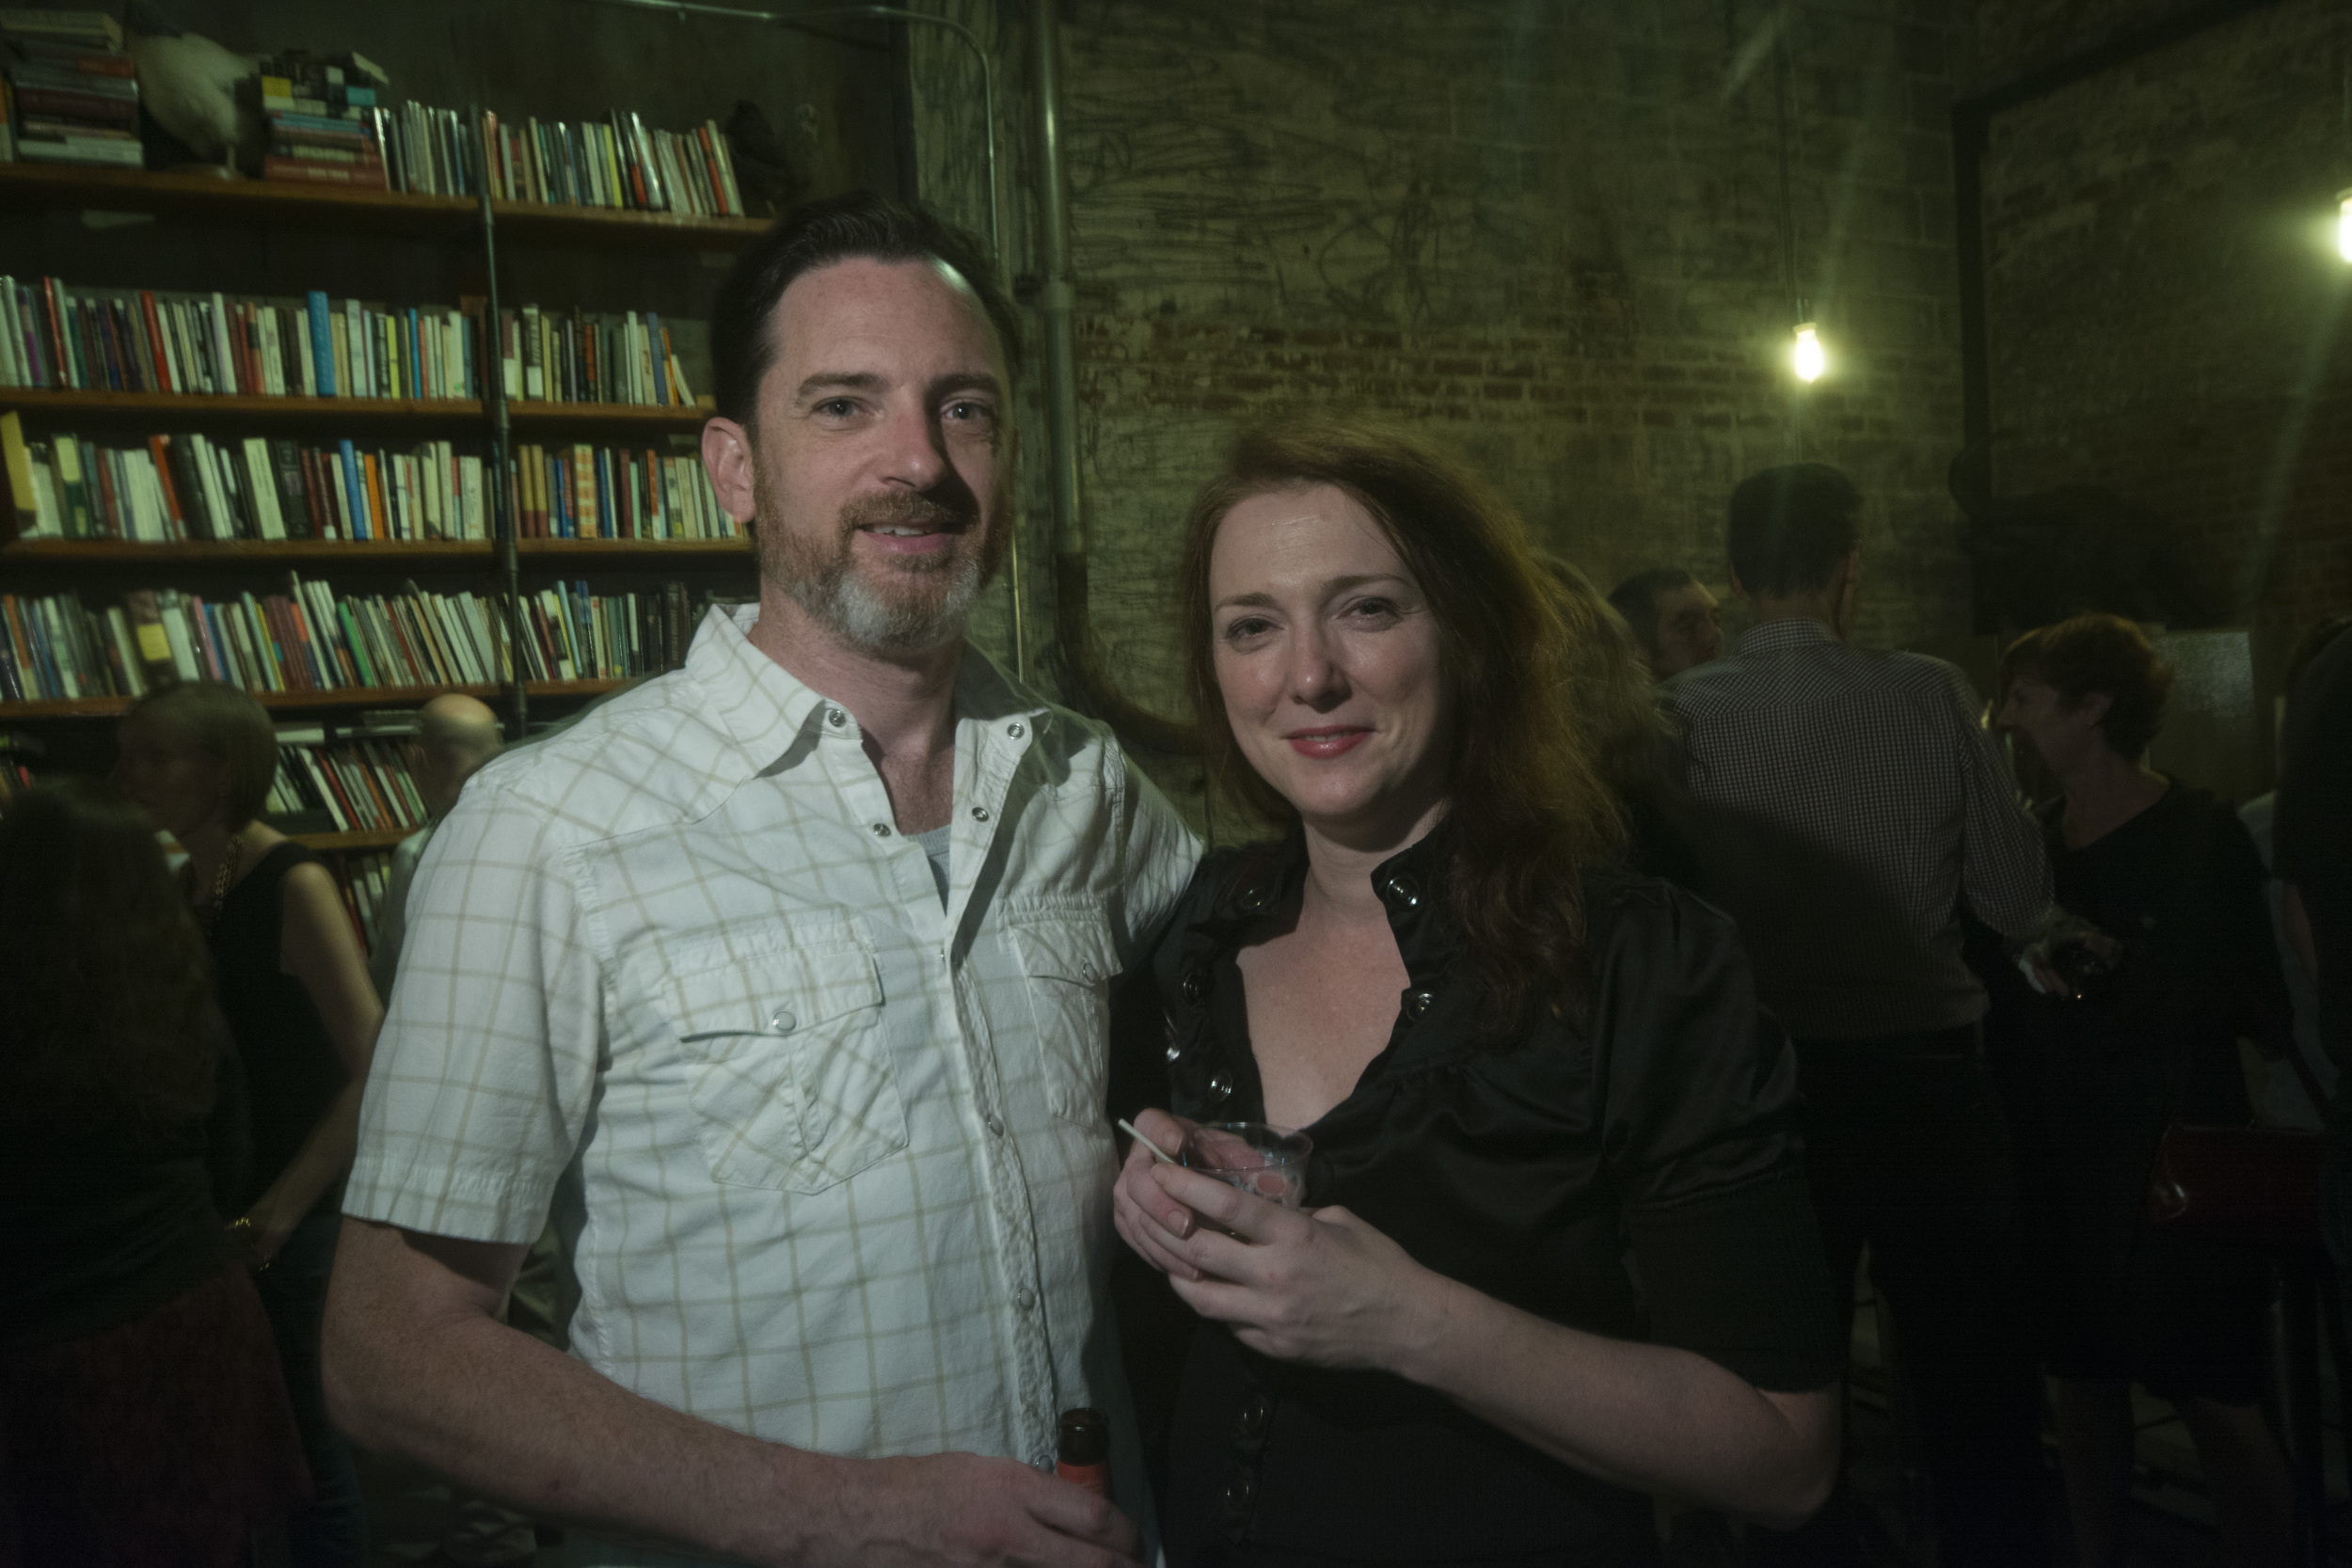 Rich McGowan and Cristina Page